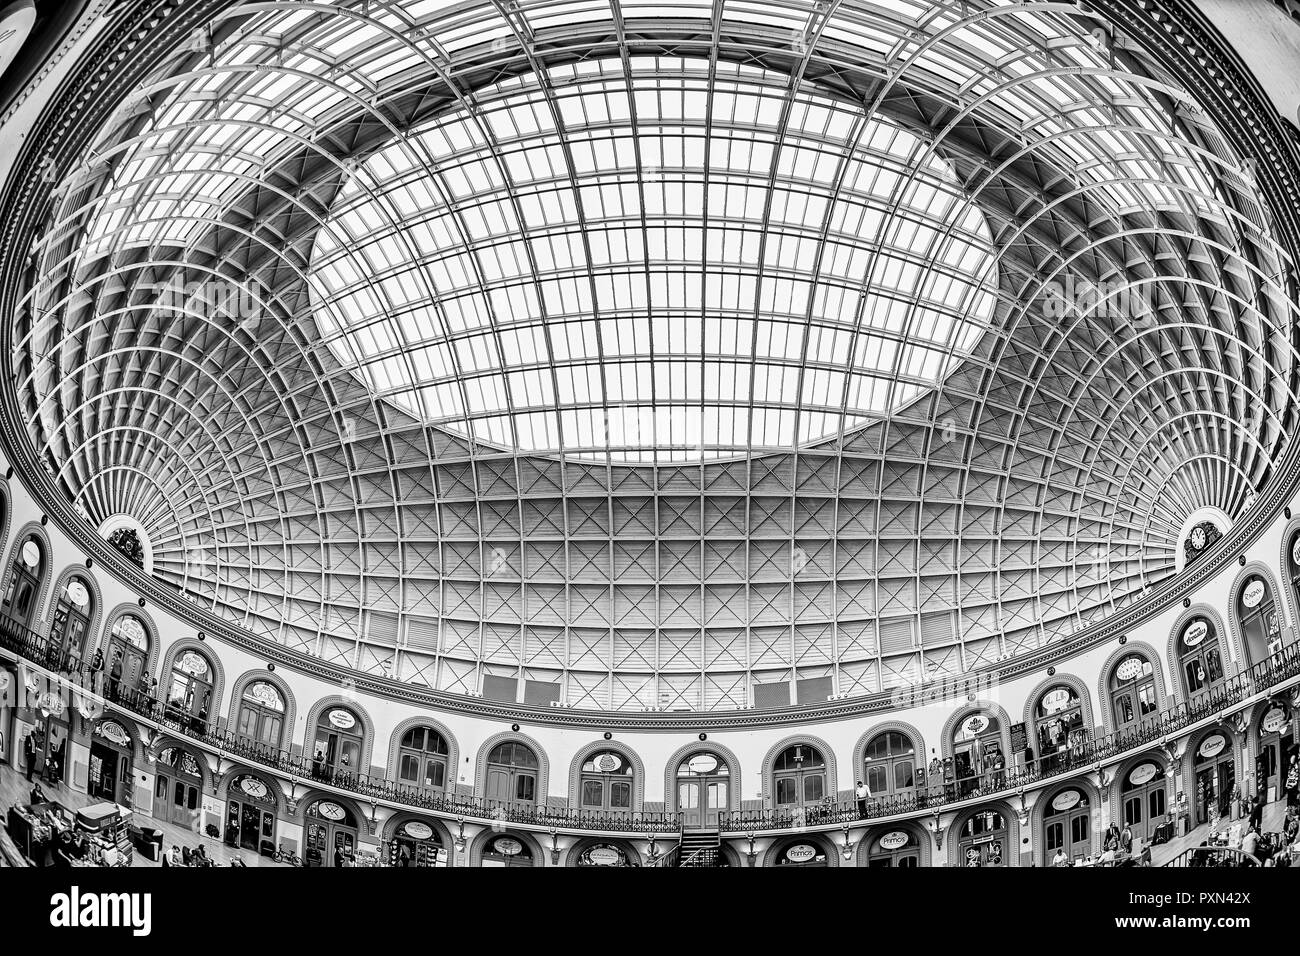 Spectacular Dome Roof in the Leeds Corn Exchange - Stock Image